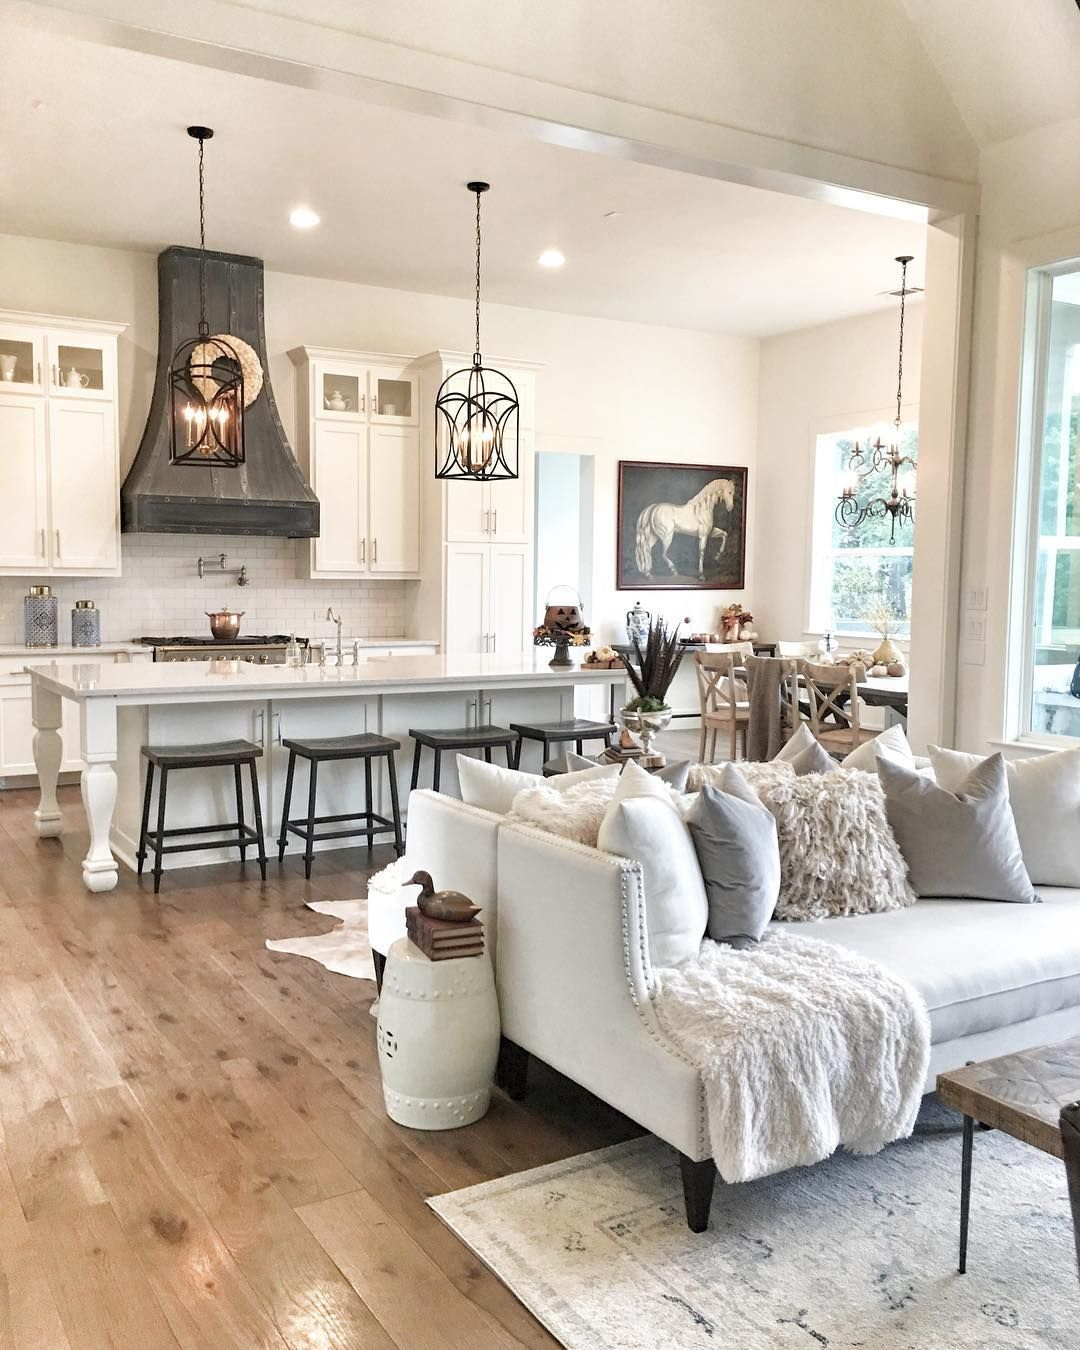 Jennifer borthwick horowitz on instagram  chappy monday from thistle hill ranch the weather at is rainy  chilly today also comfy farmhouse living room decor ideas design rh pinterest